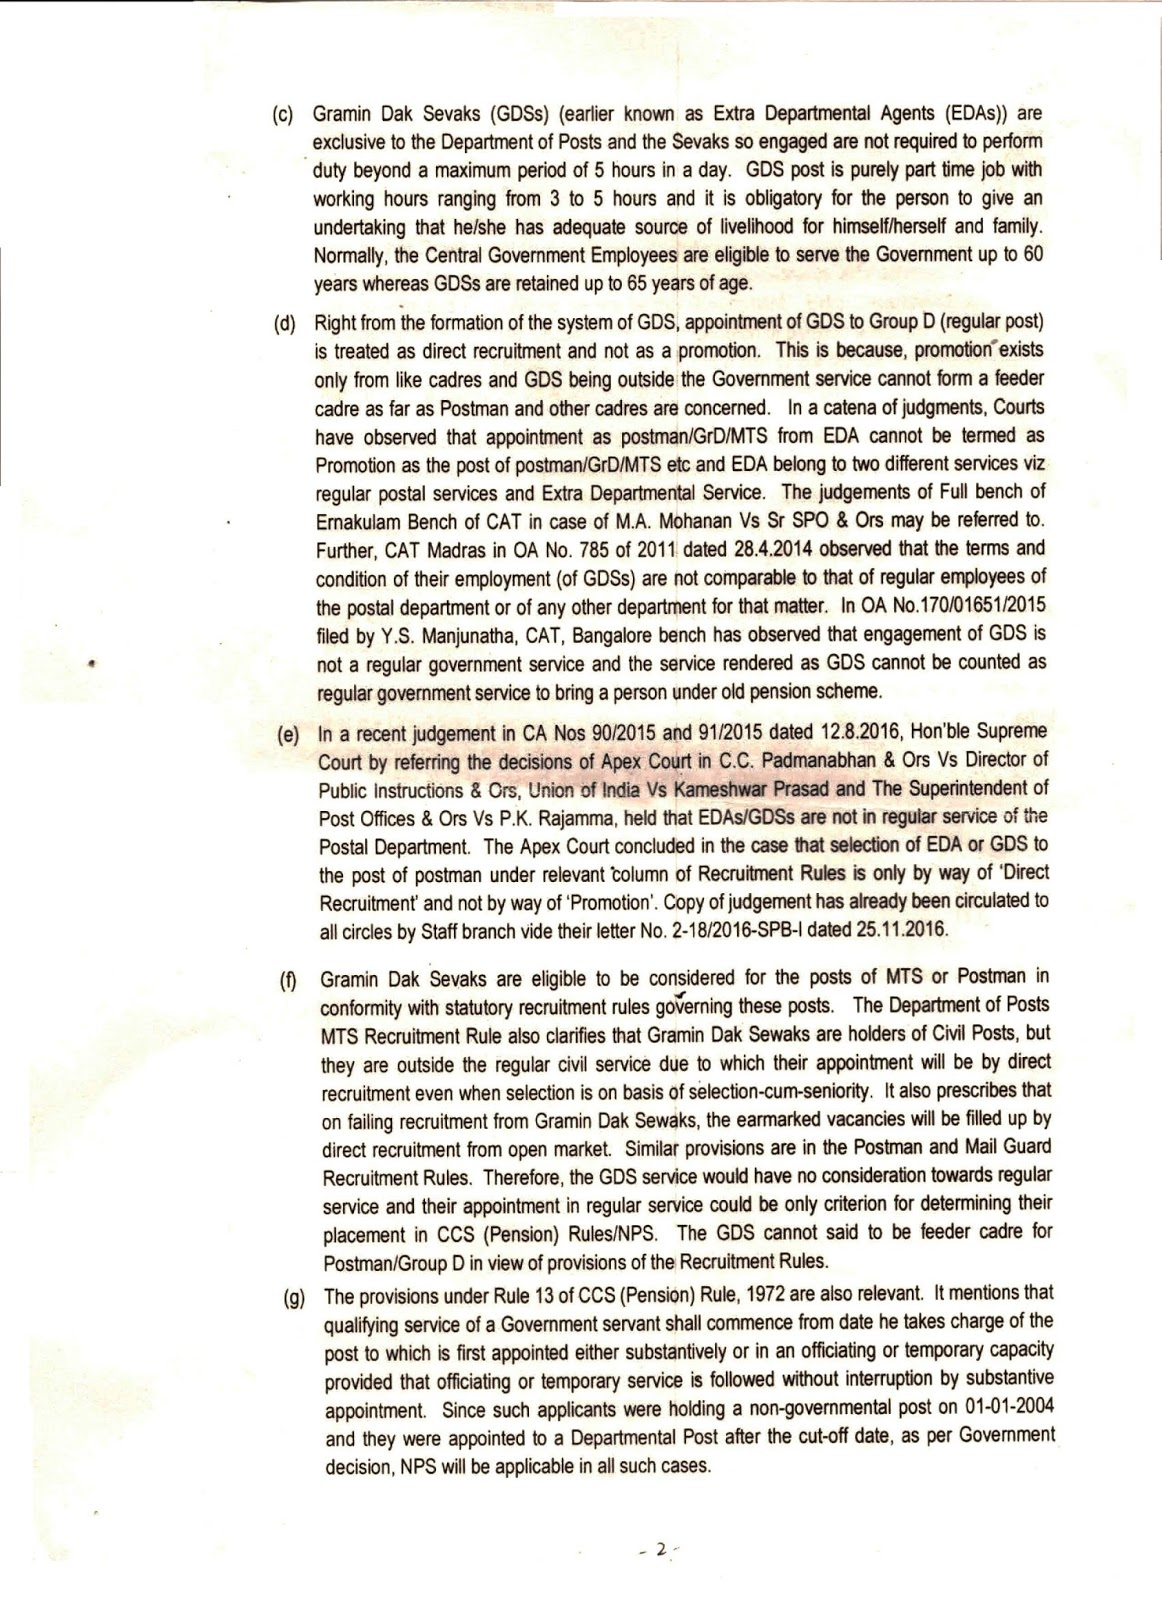 Applicability of CCS (Pension) Rules instead of NPS-2